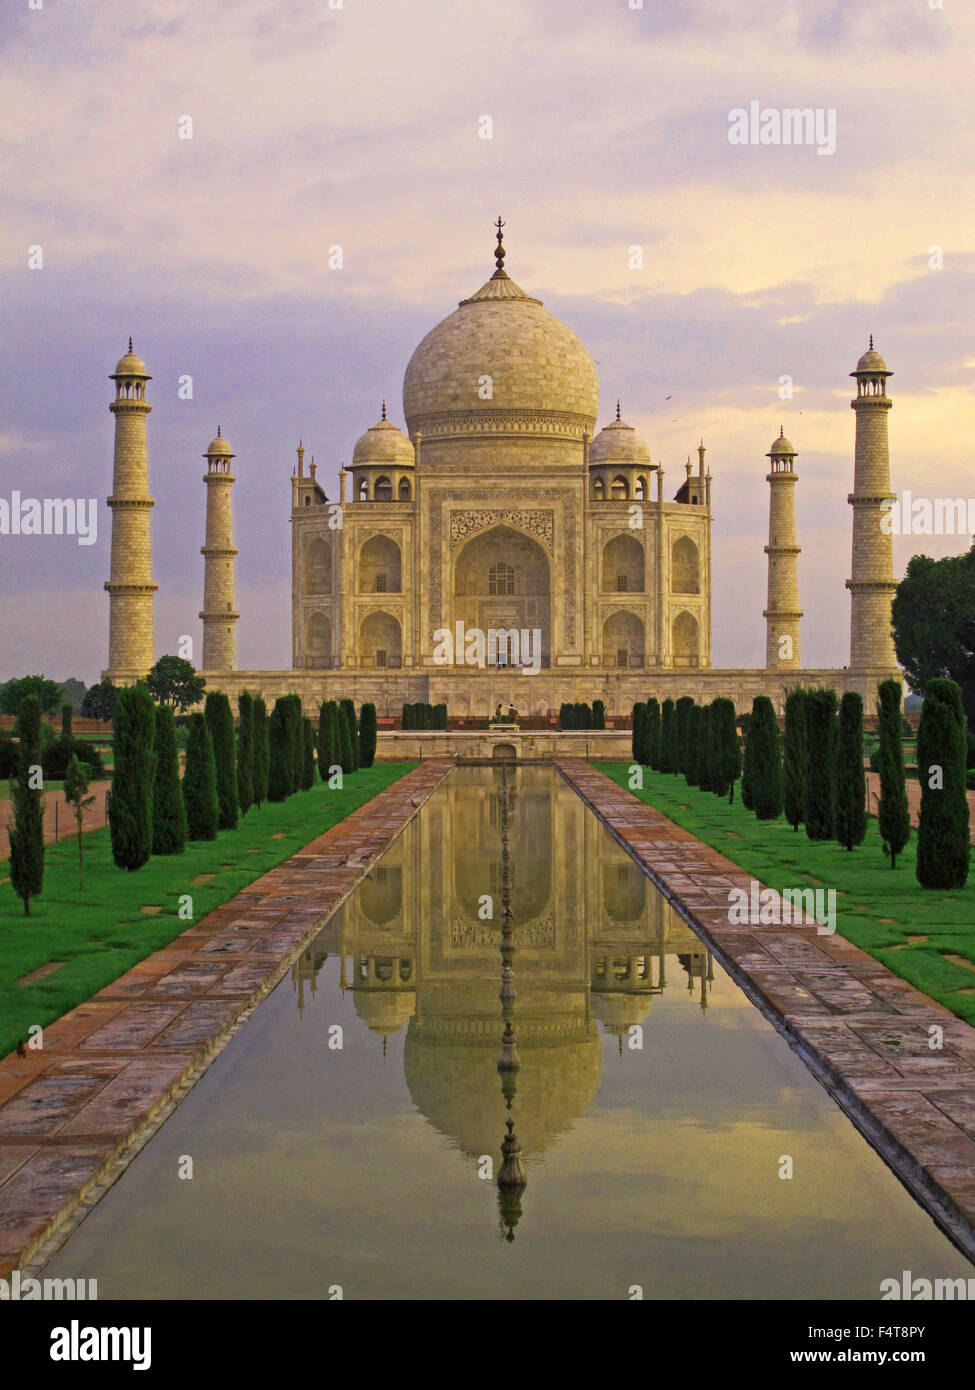 The Taj Mahal at sunrise in India, Agra, White marble dawn breaking - Stock Image